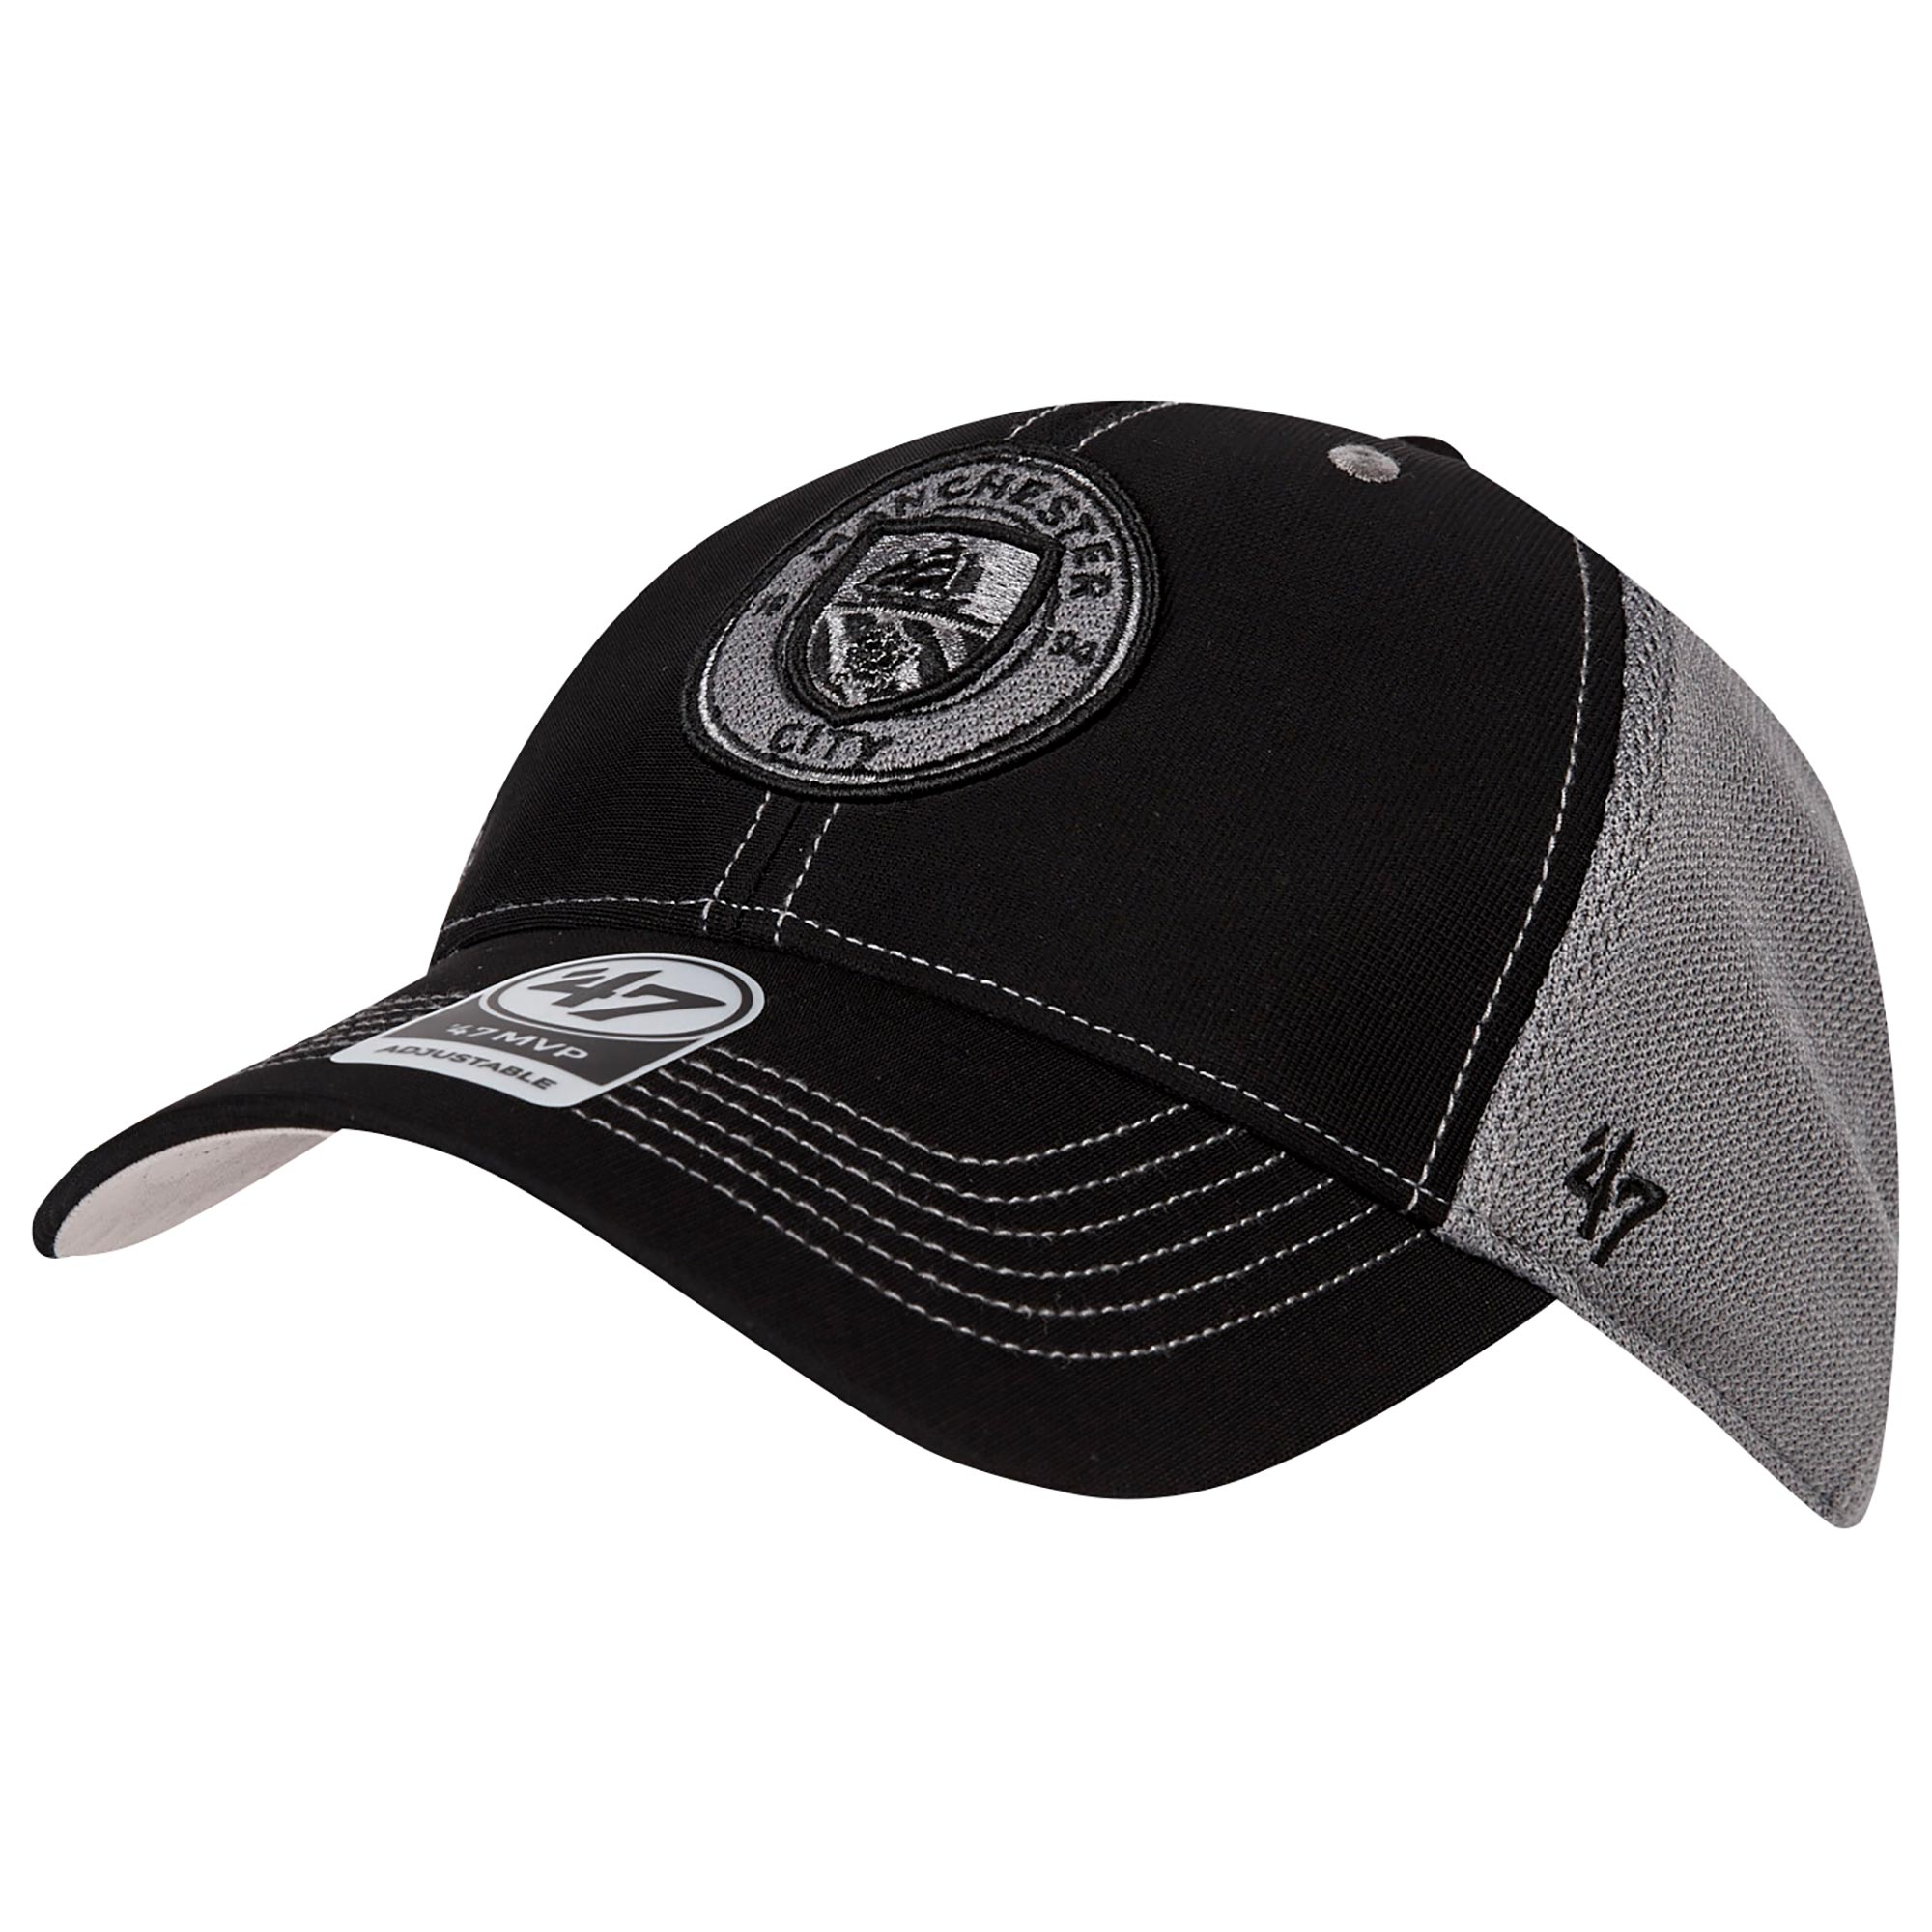 Manchester City 47 Return Cap - Black